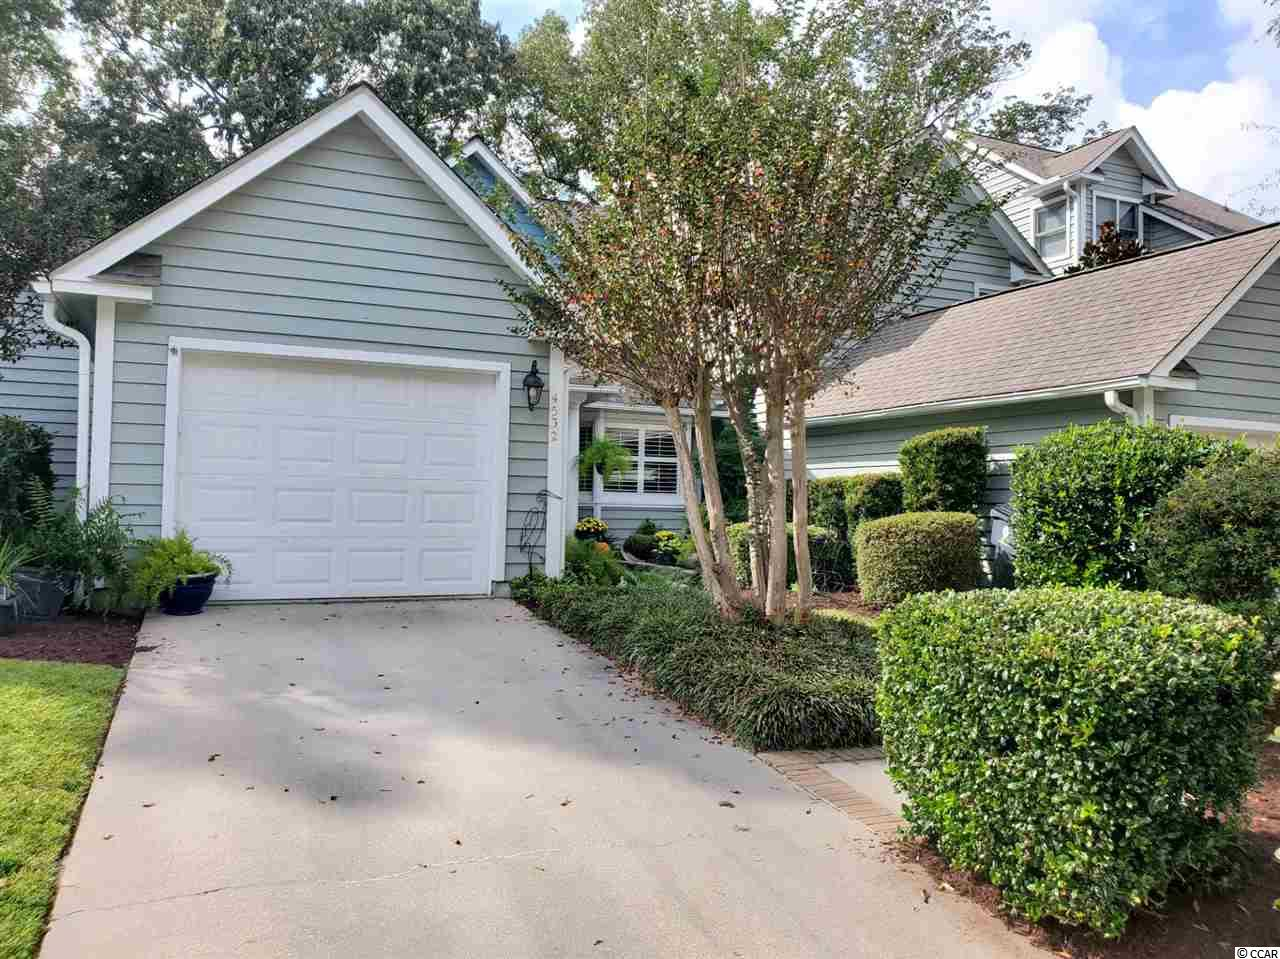 Immediately relax as you step in the door of this immaculate and well loved home. It features a fully equipped kitchen with breakfast/ dining space or if you prefer a more formal look can set up as living room/dining room combination. LR has spacious cathedral ceiling for that great open feeling and looks out on the popular Eastport golf course. Plantation shutters are throughout home for your enjoyment. The rear patio and covered front porch allow you to enjoy the outdoors rain or shine. Spacious master bedroom includes en-suite and walk in closet as well as a  ceiling fan and you have an additional spacious guest bedroom. In the attached garage  you will find an extra-wide pull down attic with aluminum steps. Call for your appointment today